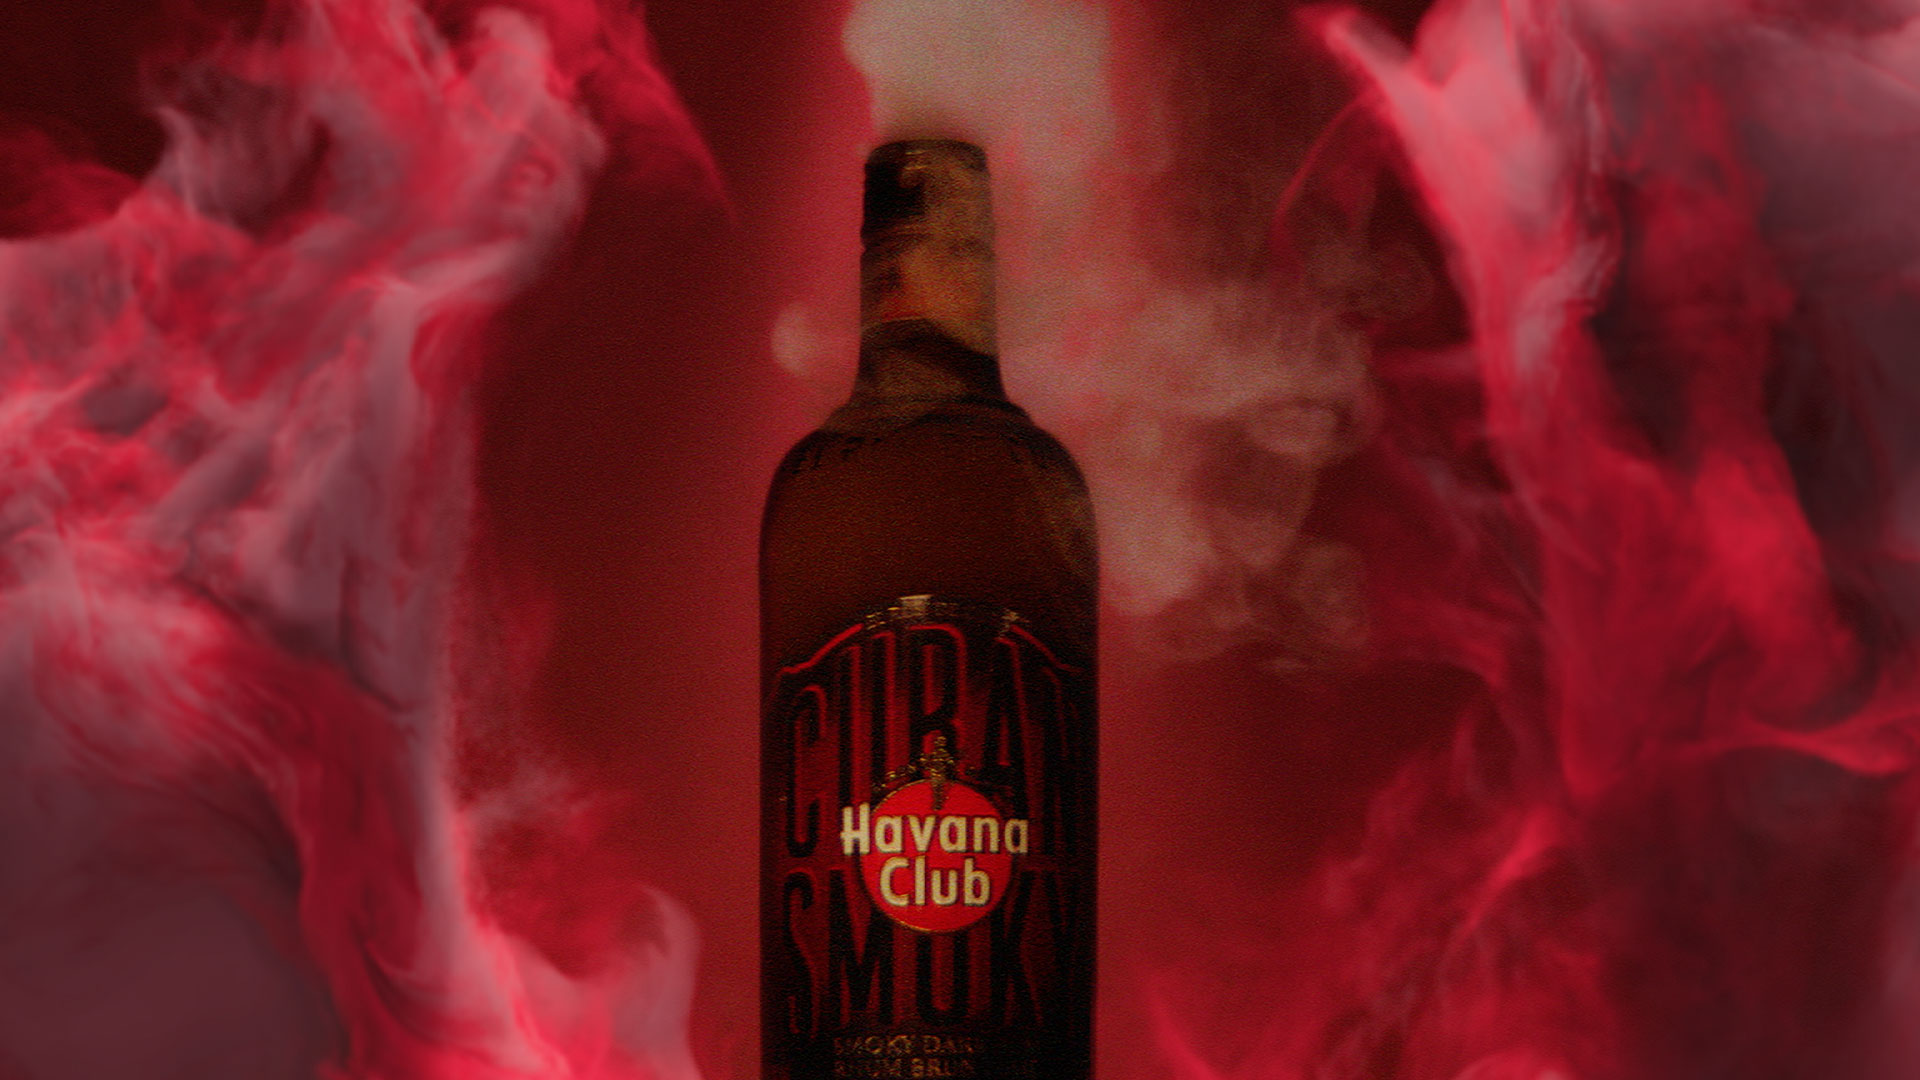 Havana Club Cuban Smoky bottle surrounded by red smoke.